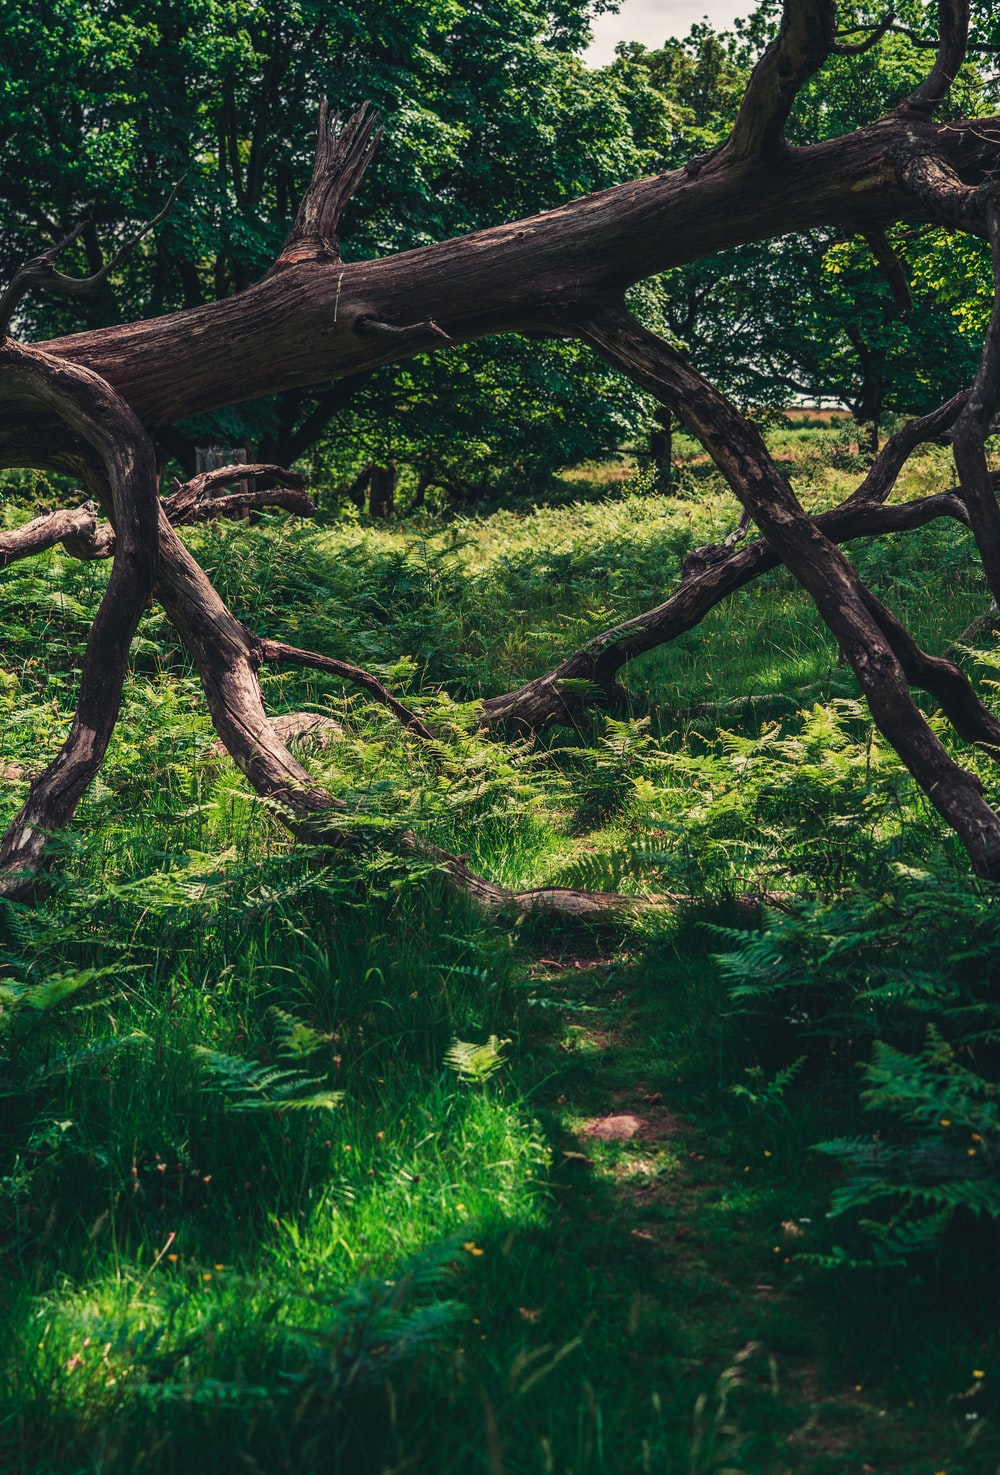 brown tree trunk surrounded by green plants